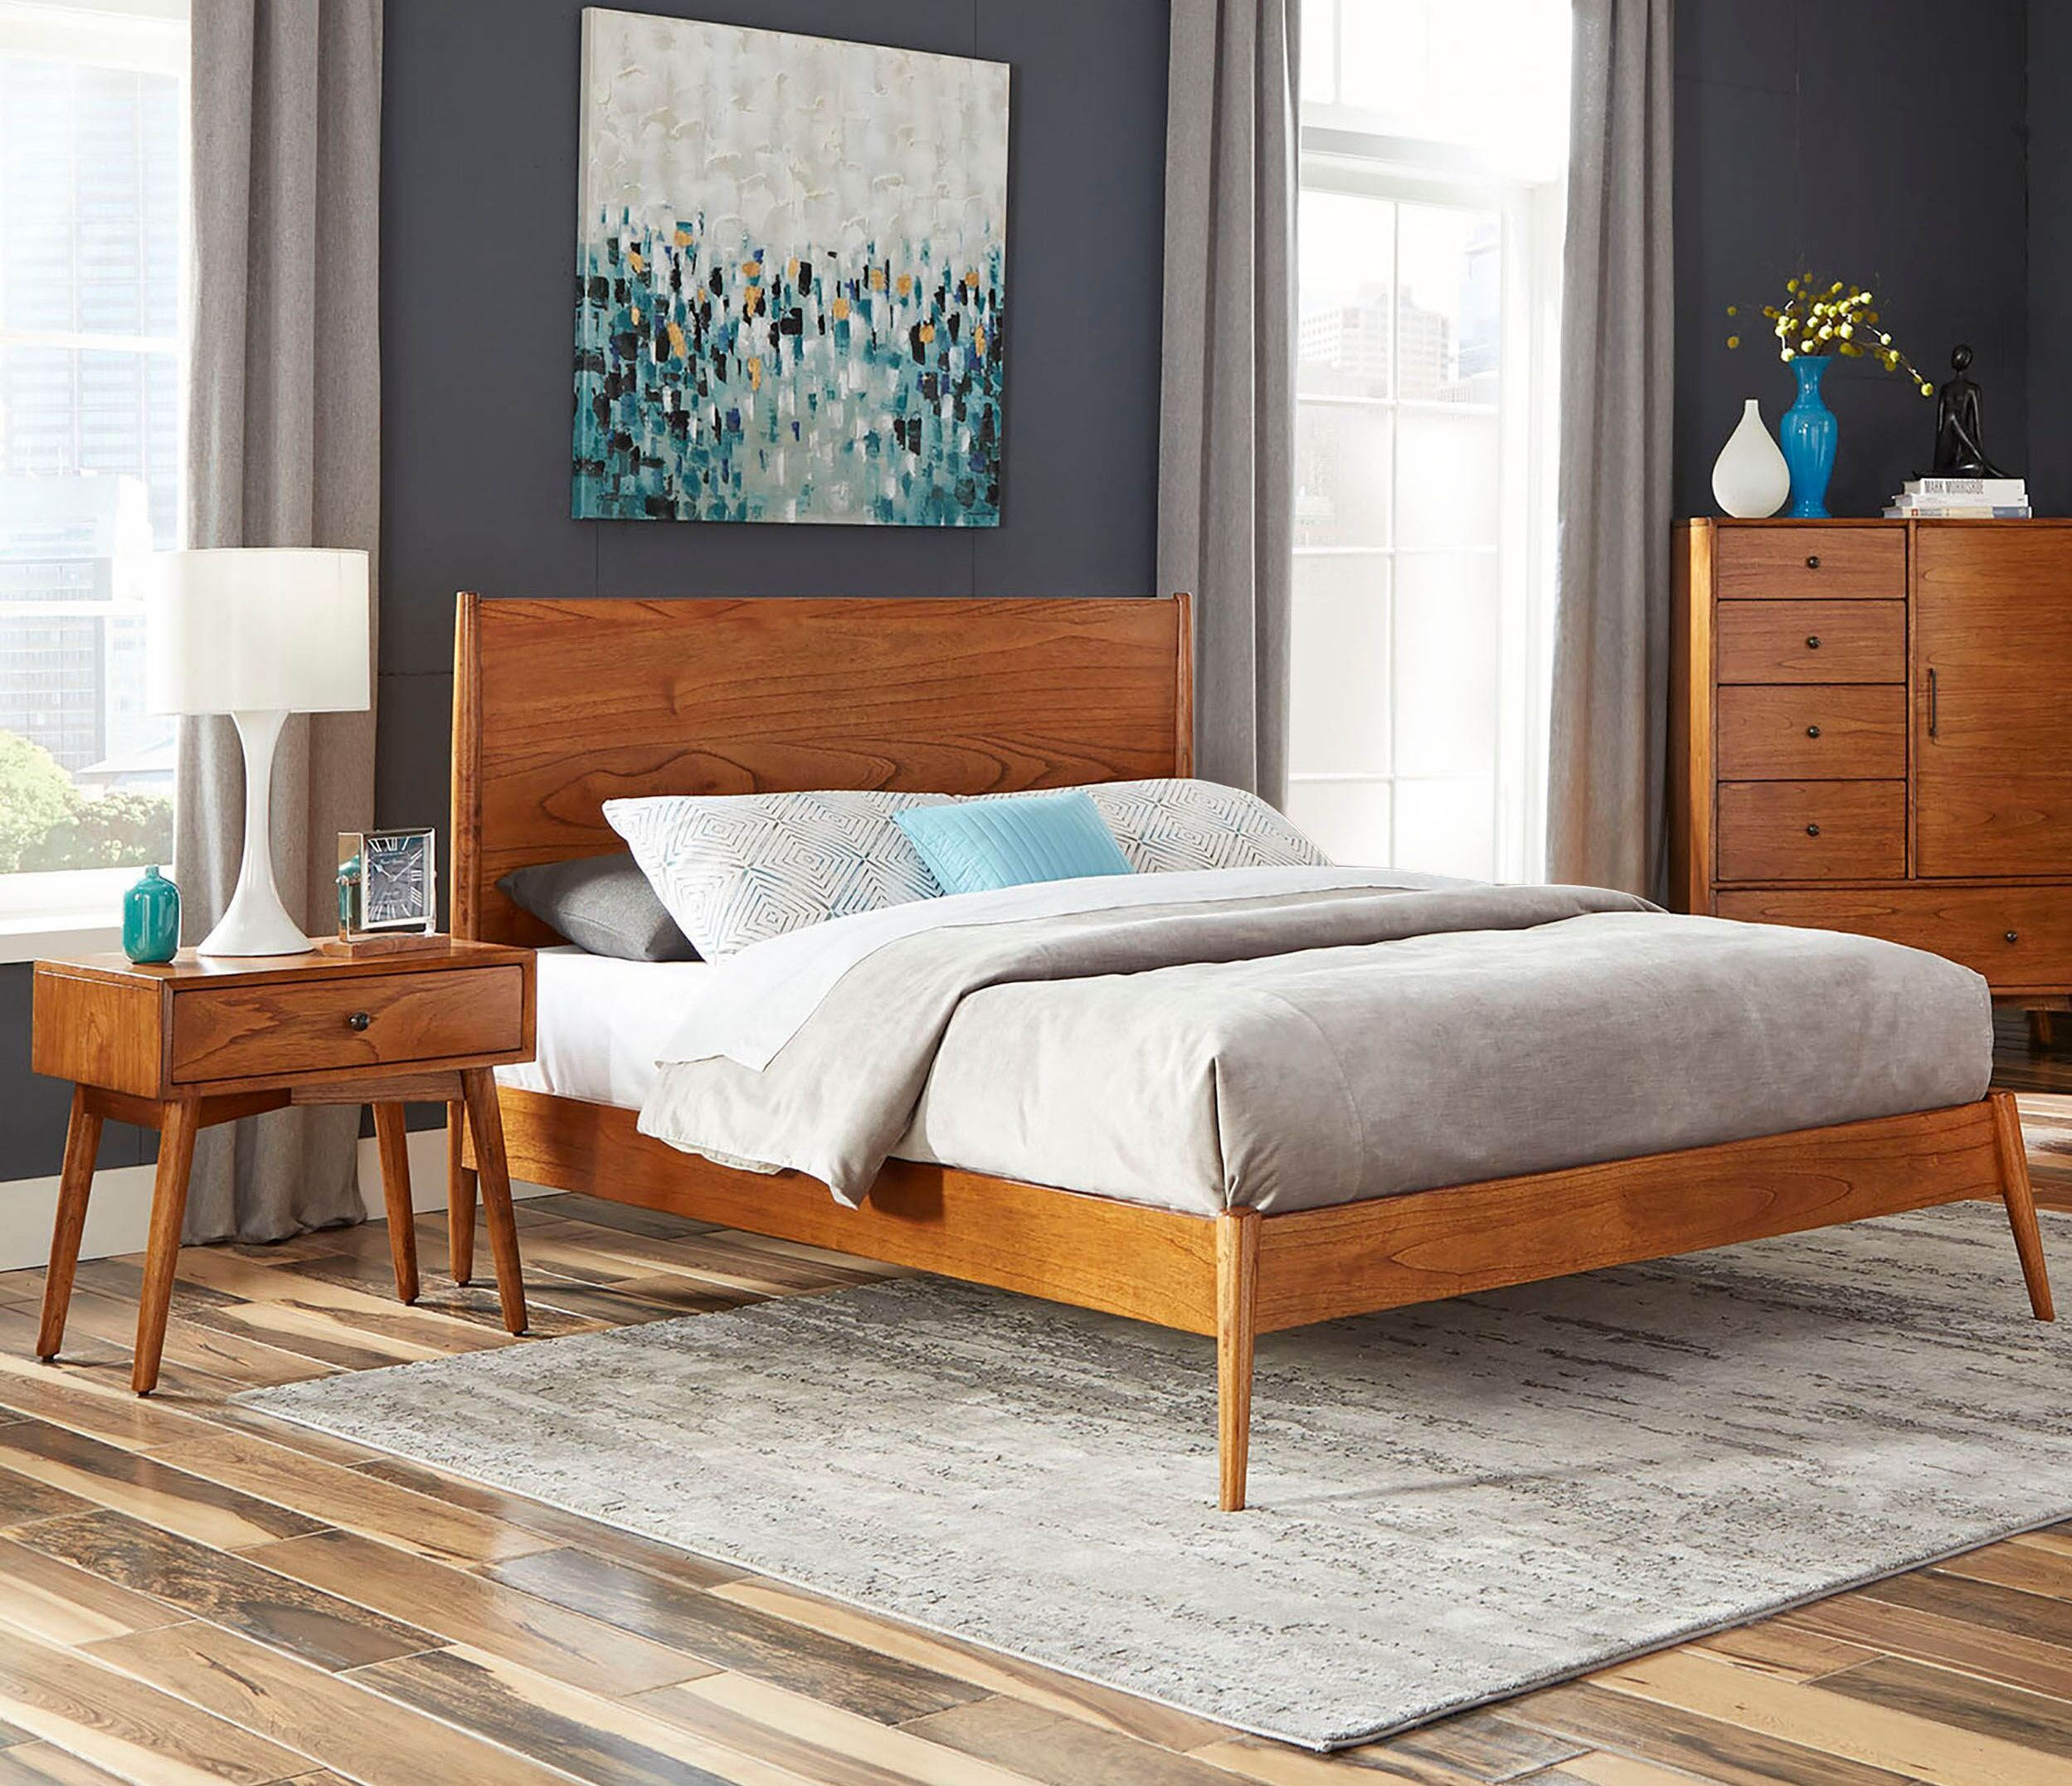 Sunny Designs American Modern Orange Brown 2pc Bedroom Set with Full Bed